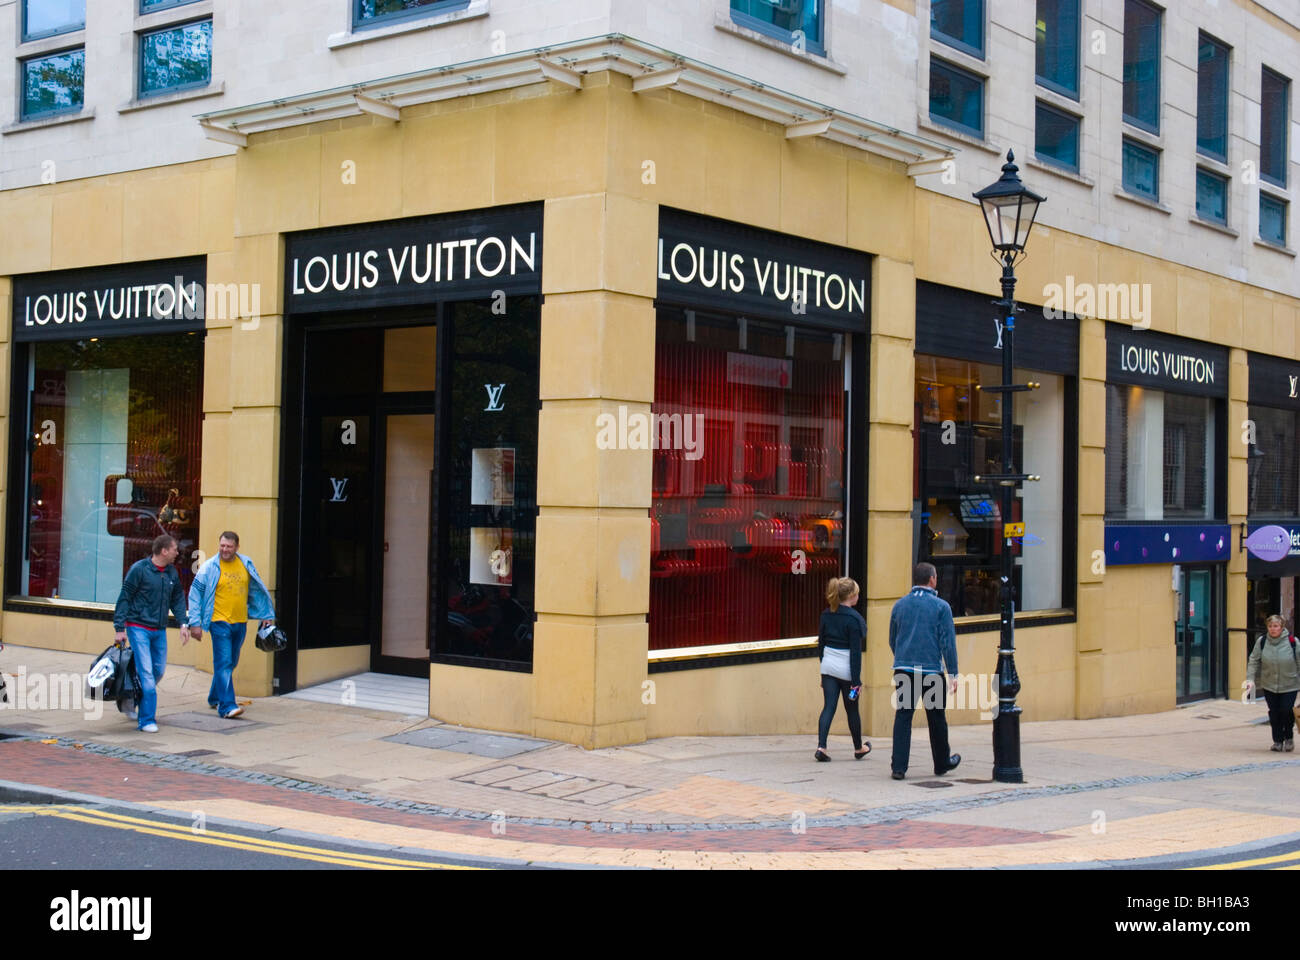 louis vuitton shop front stock photos louis vuitton shop front stock images alamy. Black Bedroom Furniture Sets. Home Design Ideas